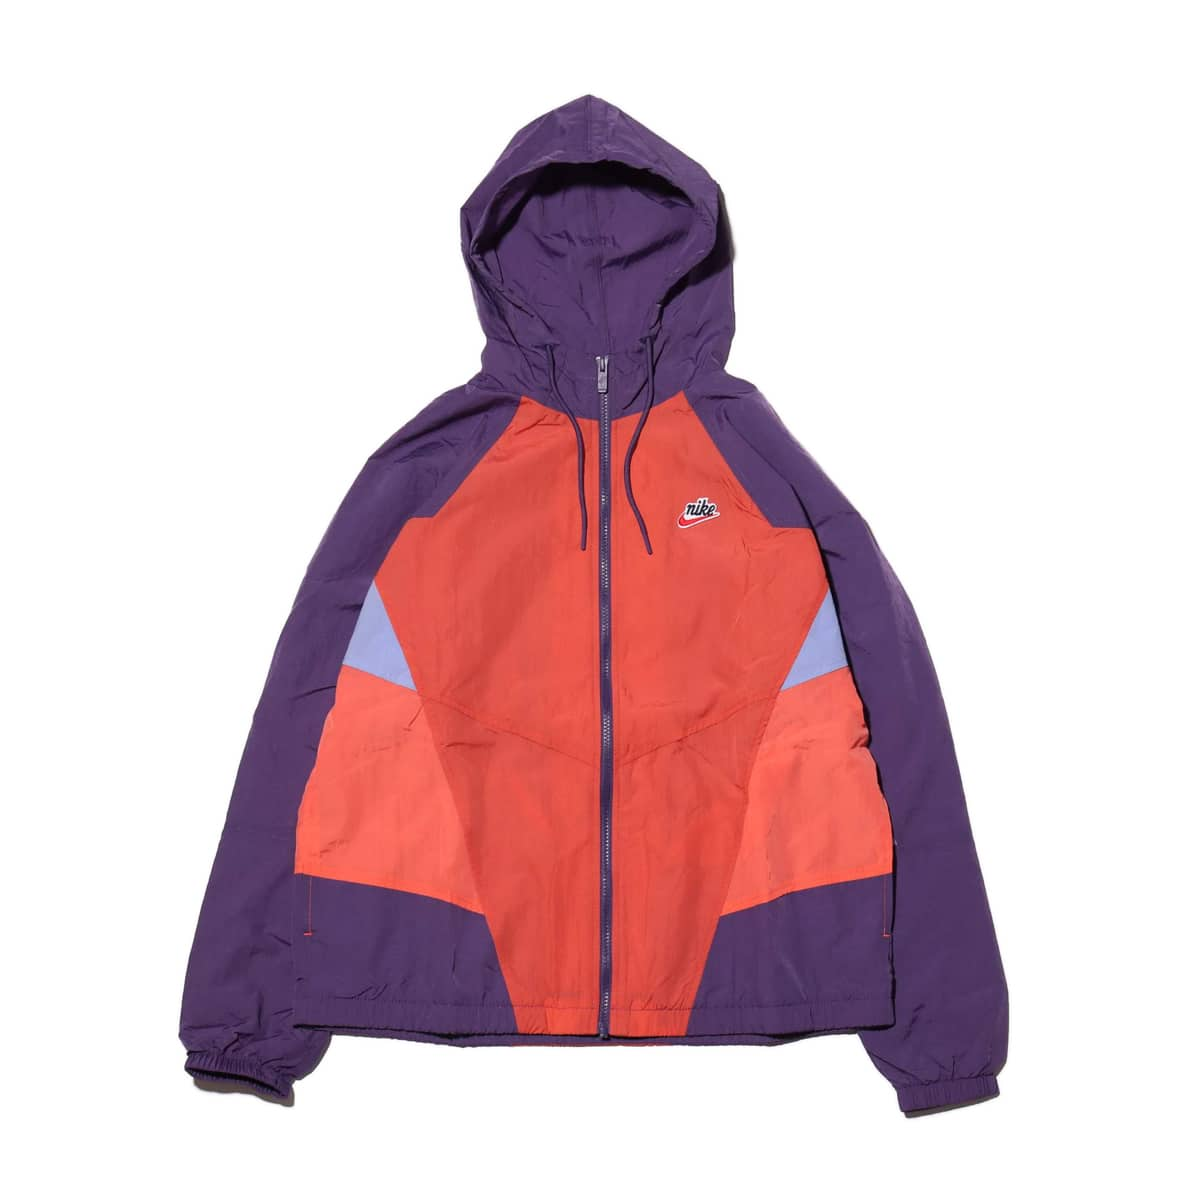 NIKE AS M NSW HE WR JKT WVN SIGN PUEBLO RED/GRAVITY PURPLE/MAGIC EMBER 20SP-S_photo_large